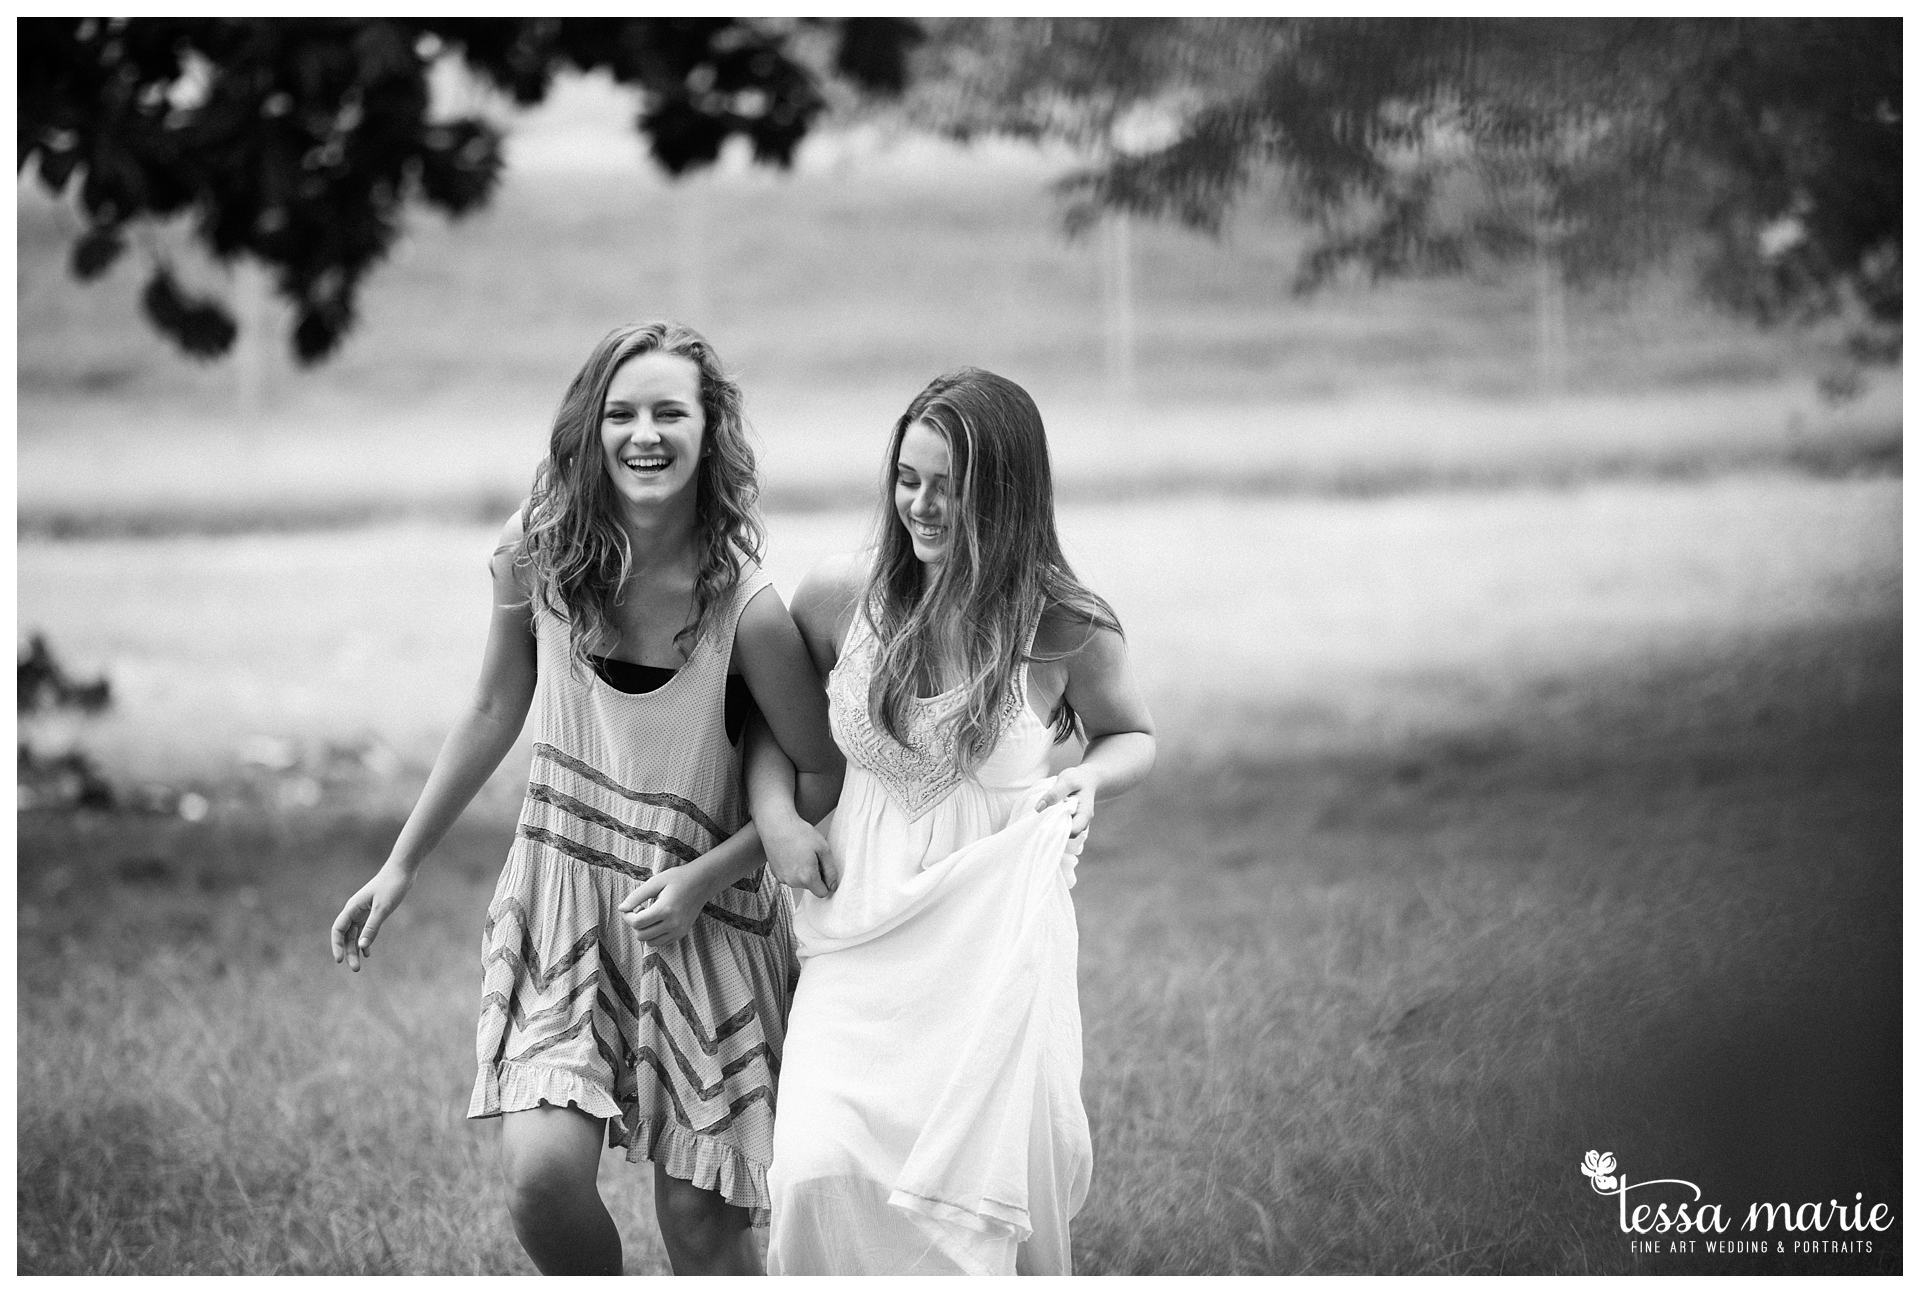 tessa_marie_weddings_legacy_story_focused_wedding_pictures_atlanta_wedding_photographer_family_pictures_portrait_Fine_art_memories_mothers_day_spring_moments_0402